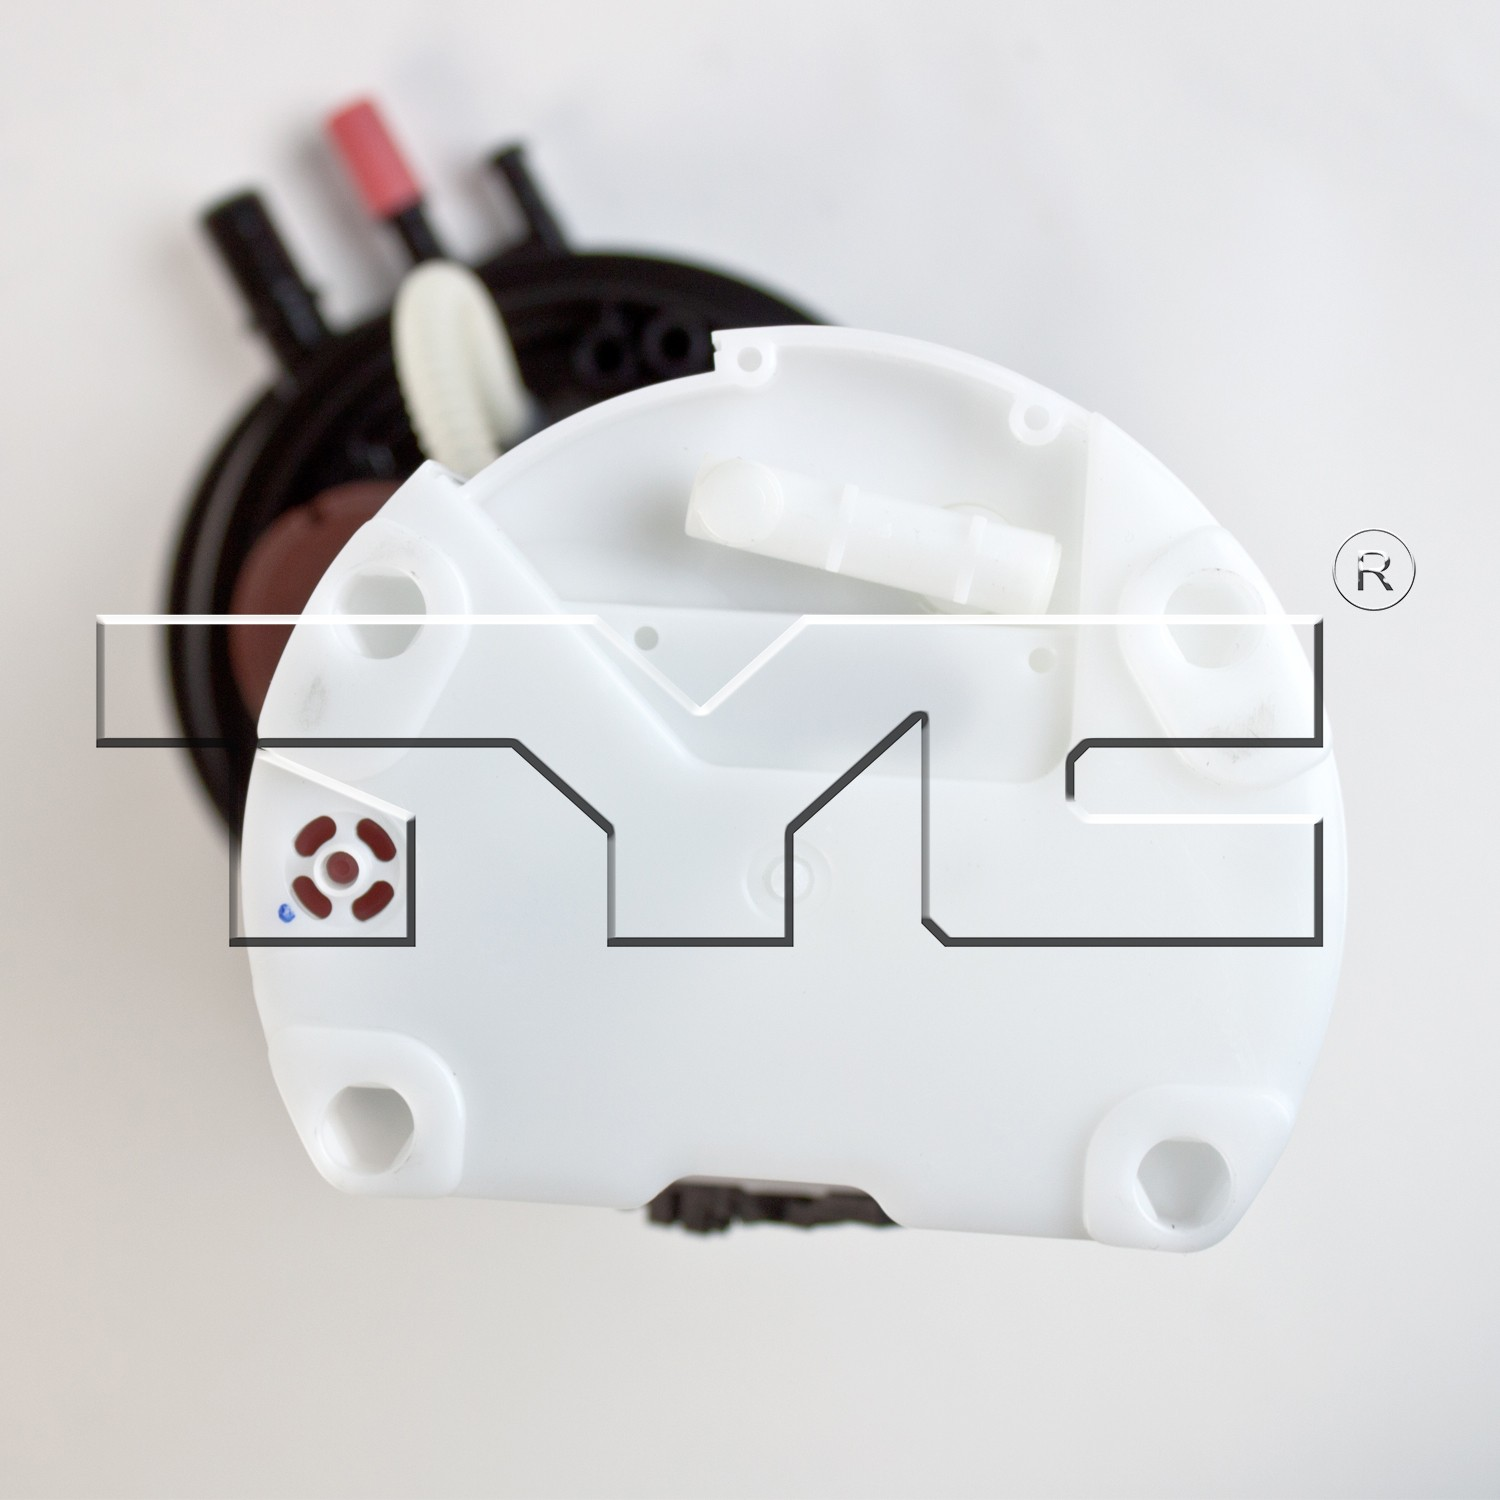 hight resolution of 2007 pontiac grand prix fuel pump module assembly ty 150235